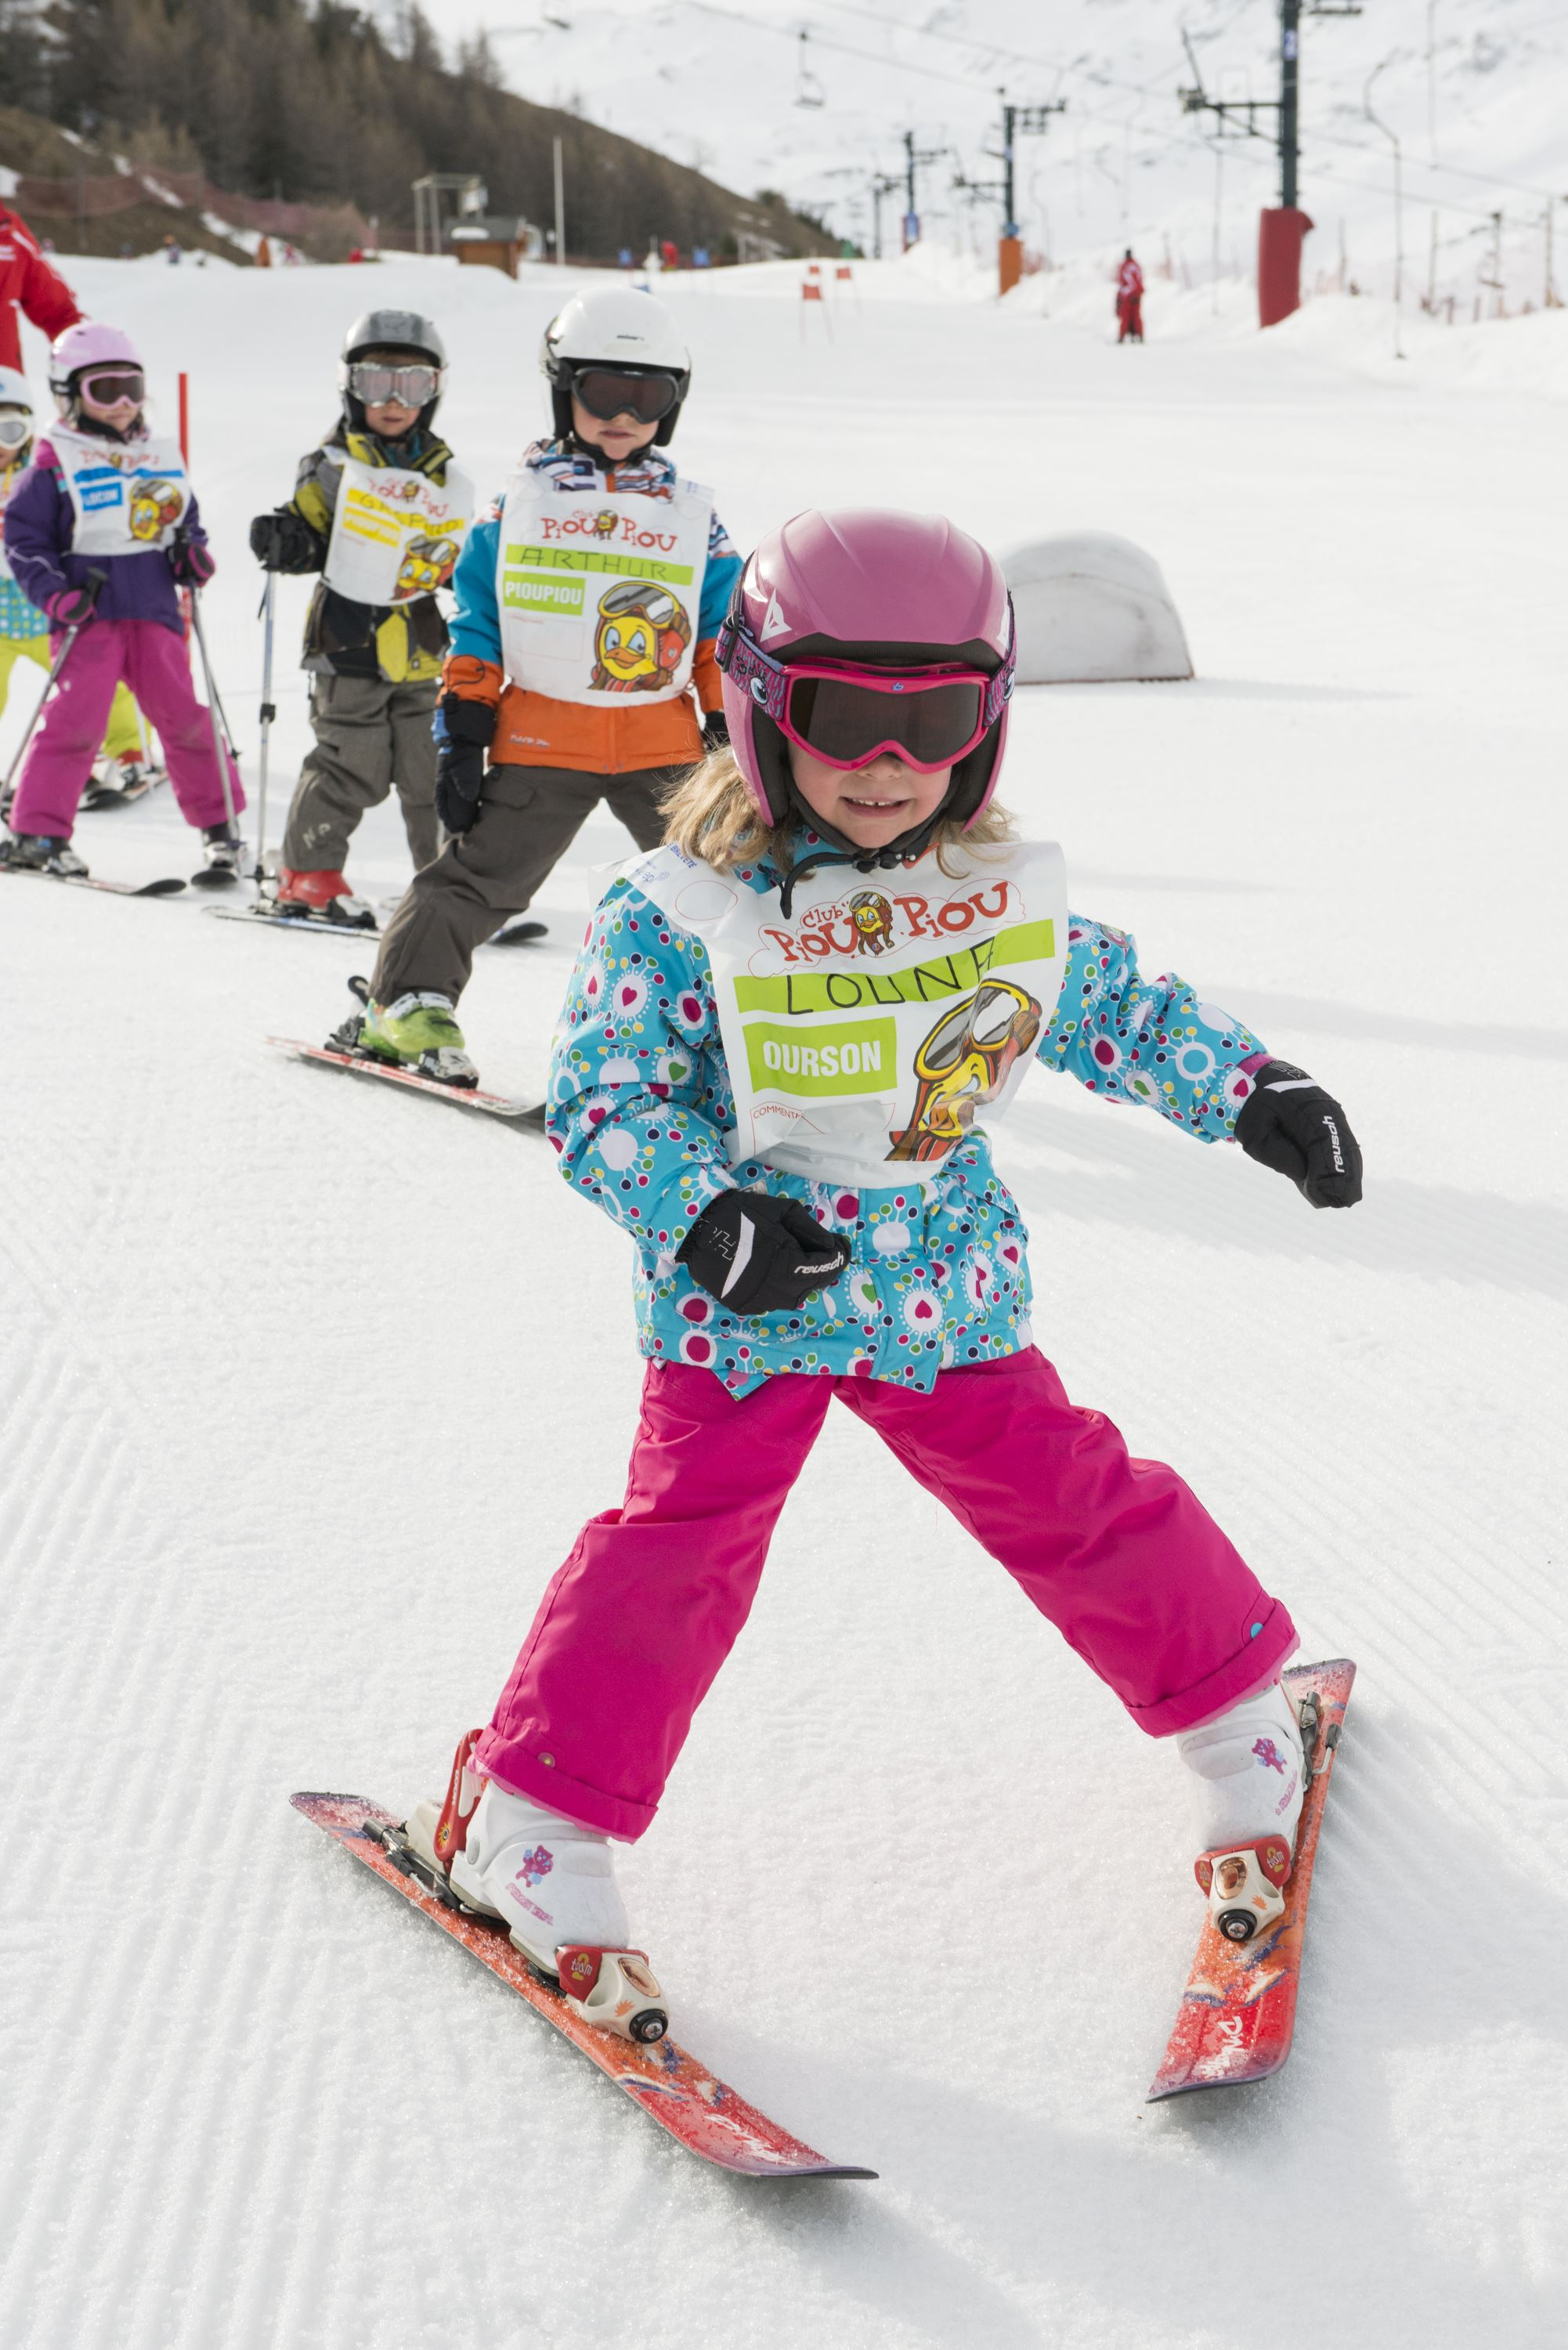 Snowball course, Dt Martin only, from 3 to 5 years, for beginners and teddy bear level, ski and games during afternoons